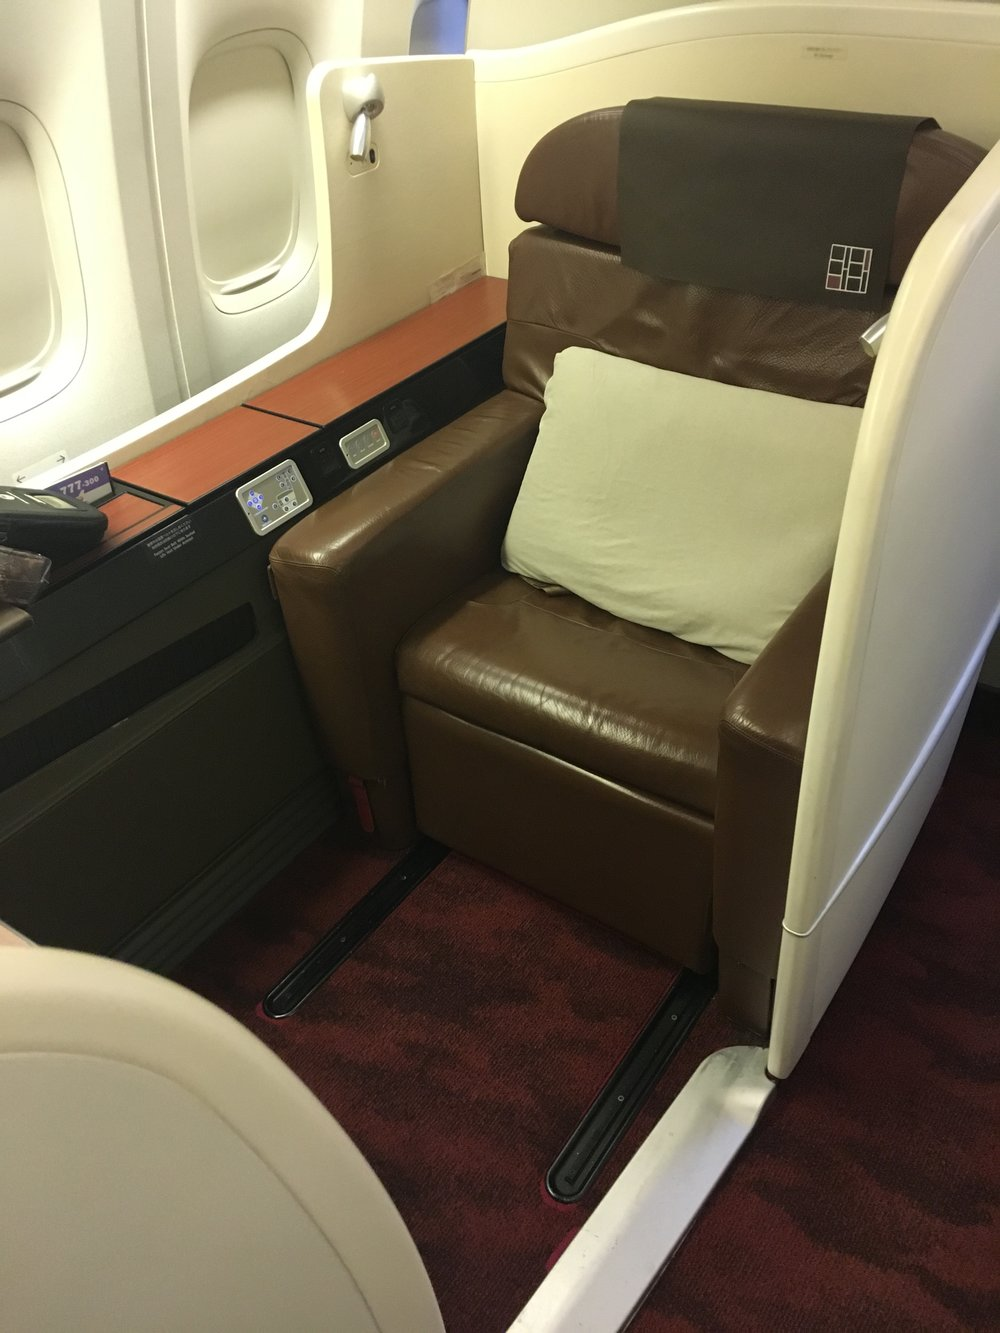 "Super comfy ""arm chair"" style lie-flat recliner in JAL First Class. Loads of storage compartments everywhere too which was nice."